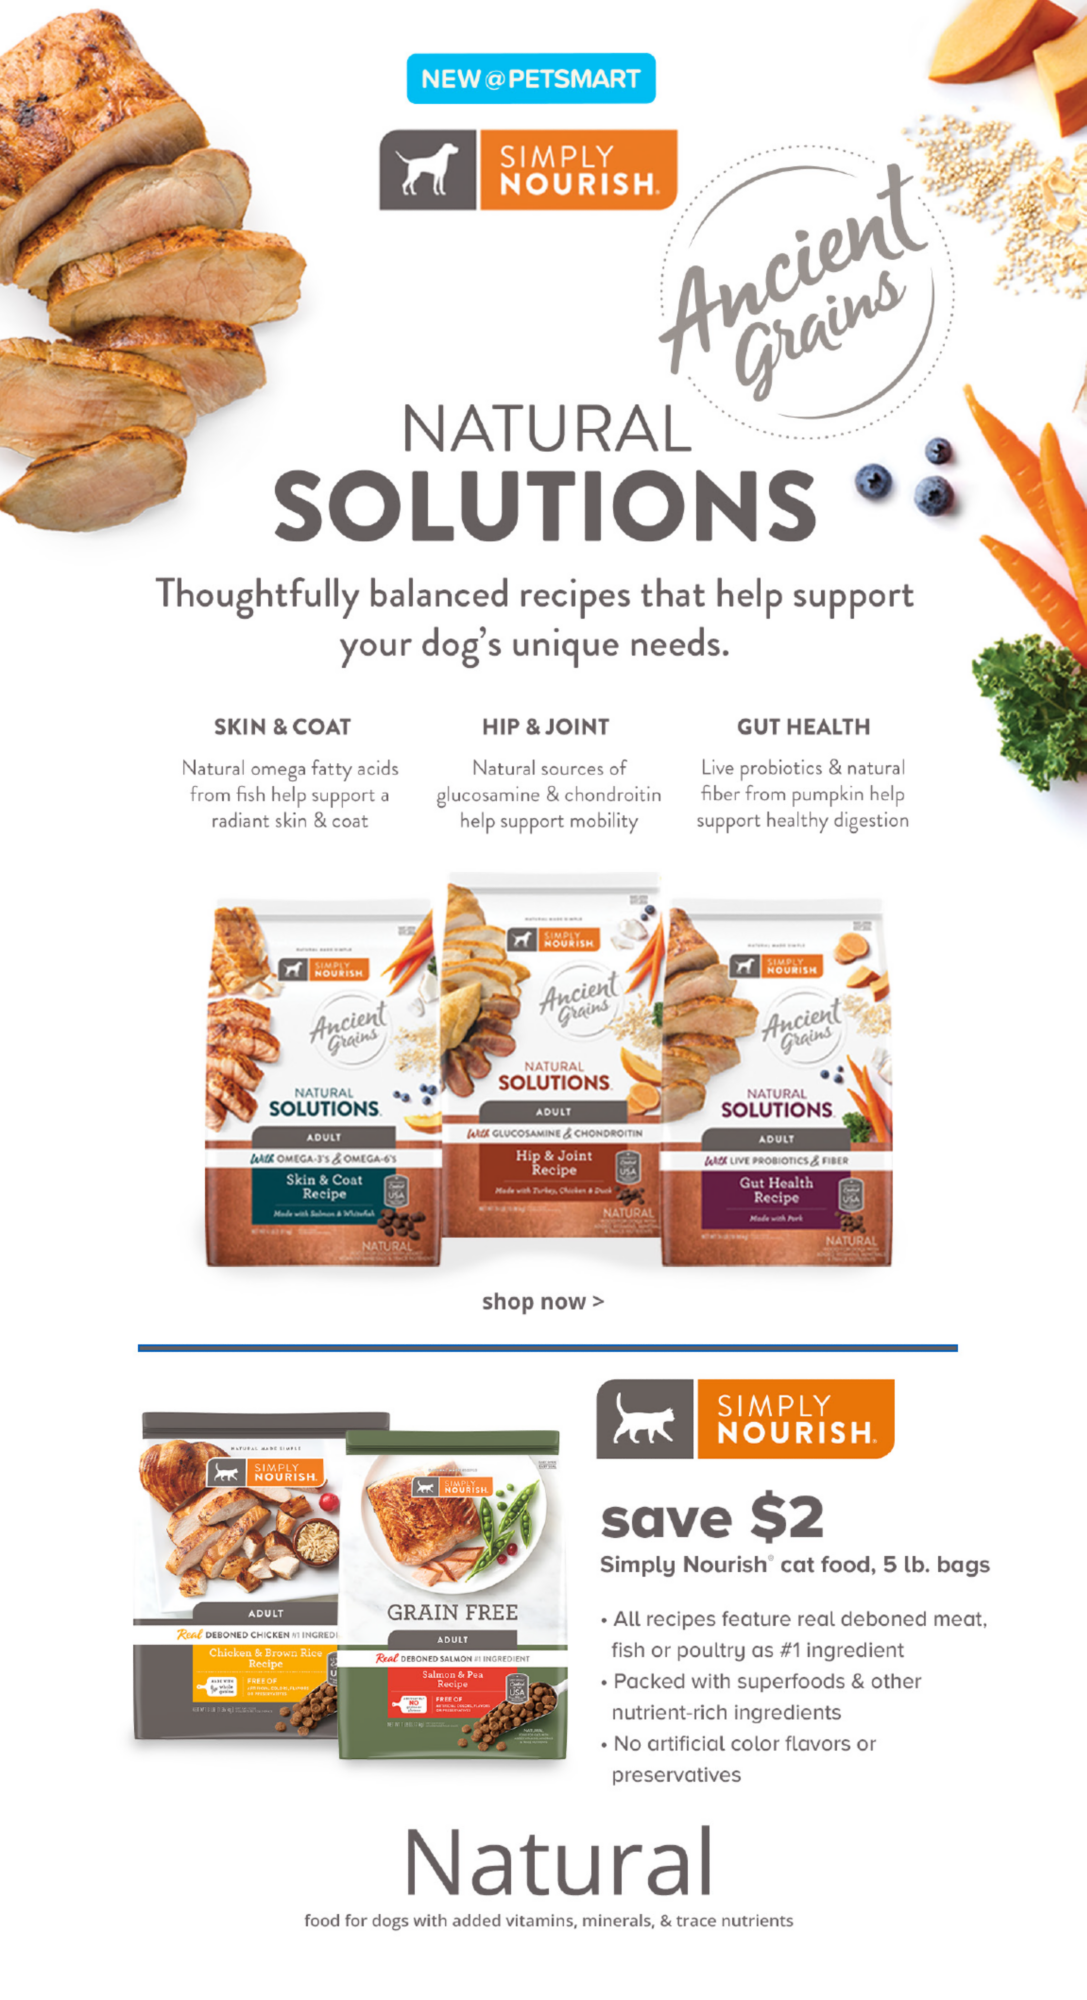 Simply Nourish Natural Solutions Dog Food & Cat Offer Banner @ Bottom